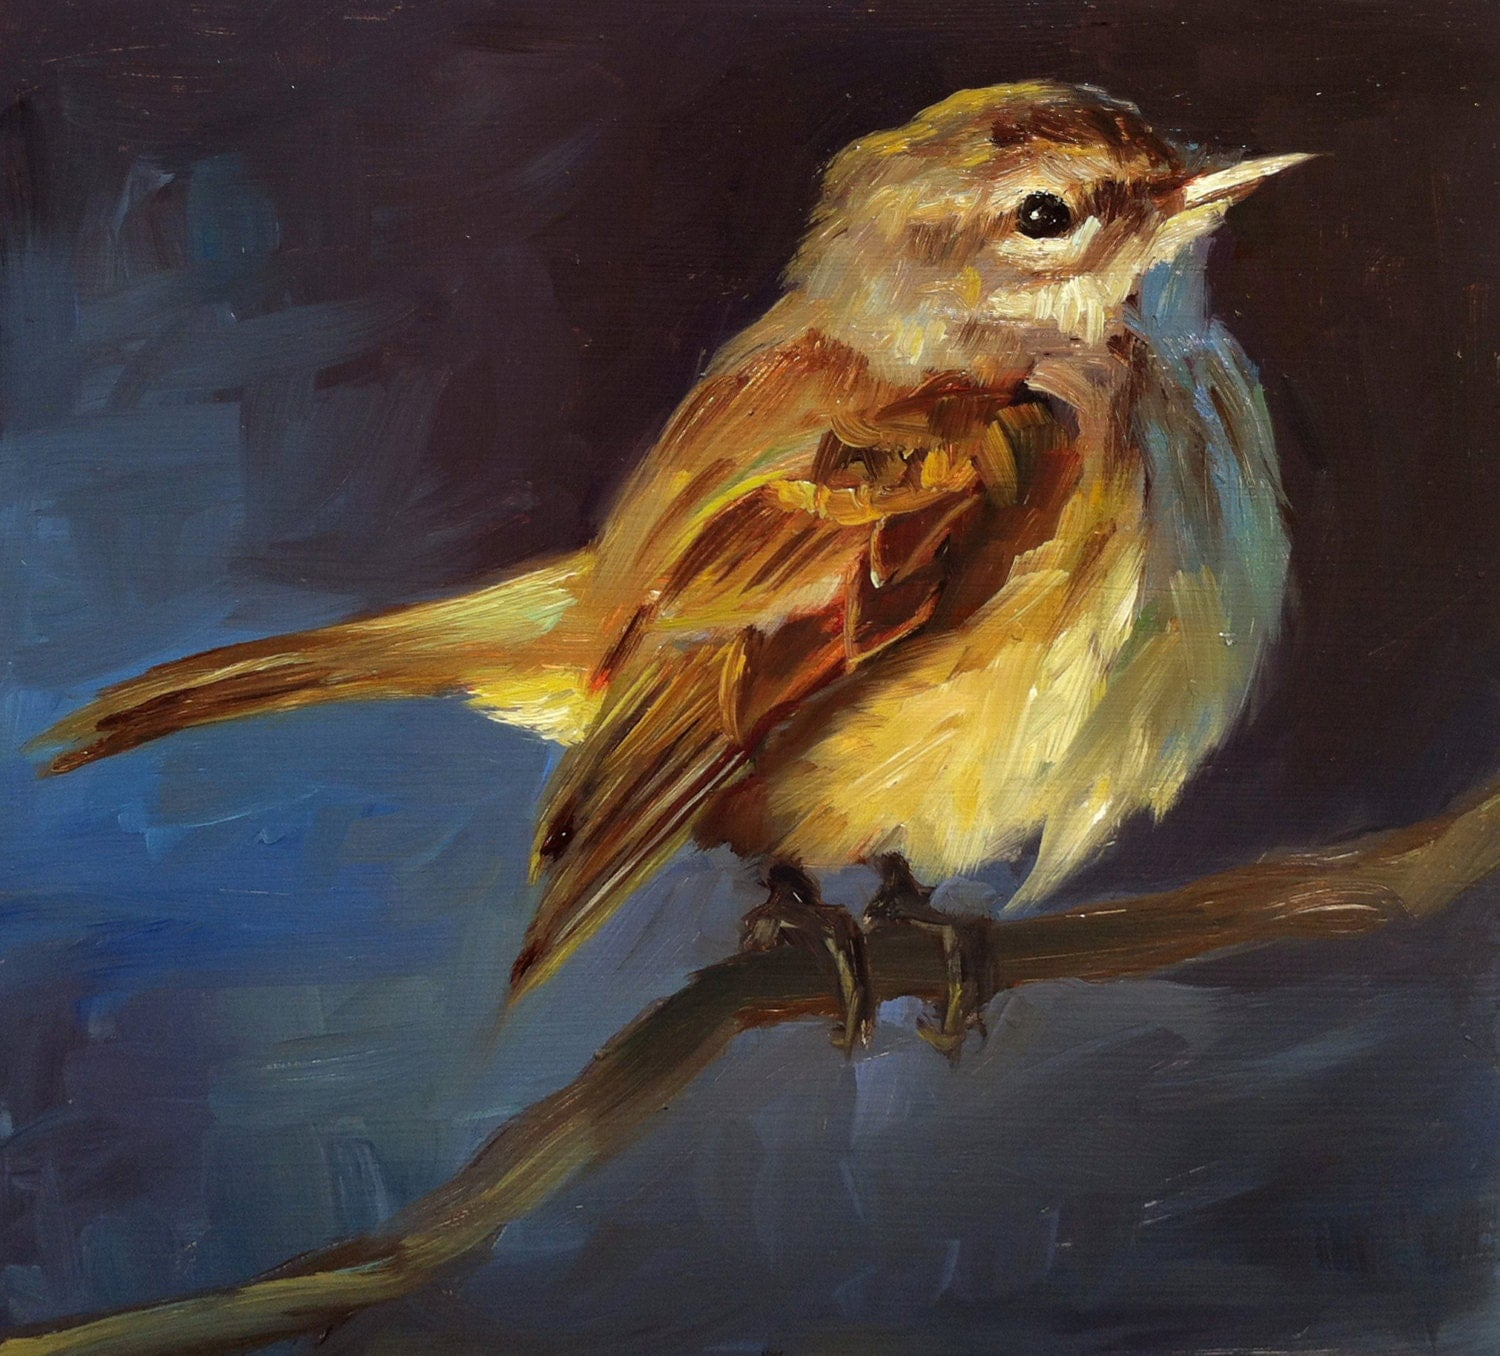 palm warbler bird painting open edition print of original